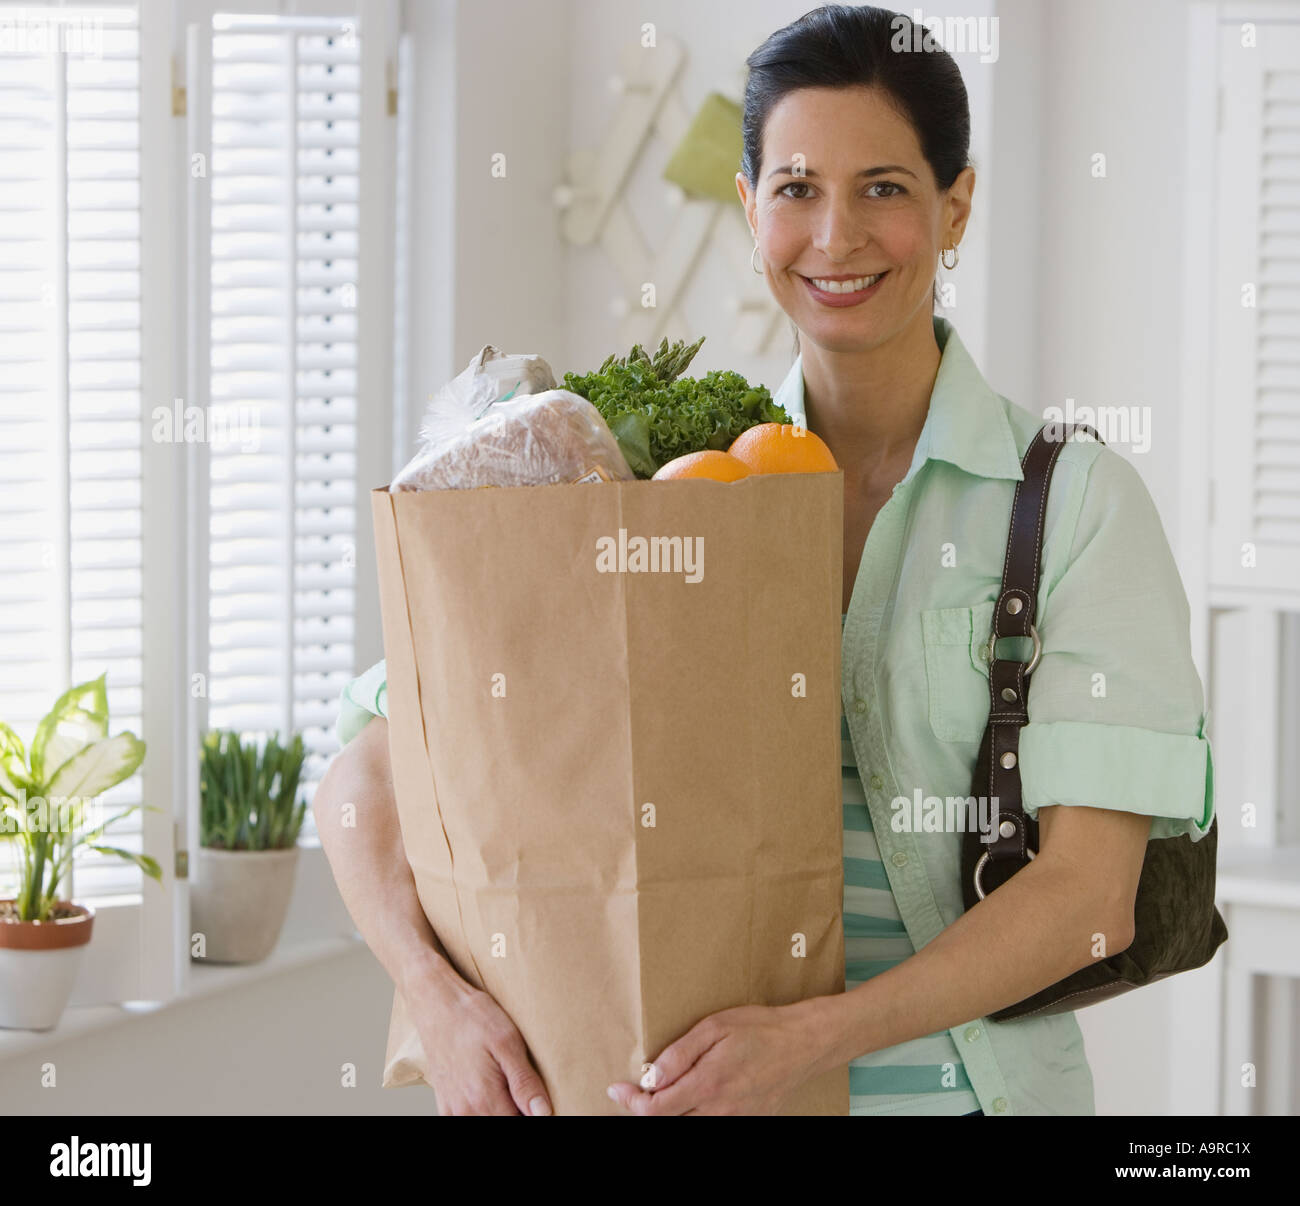 Woman holding bag of groceries in kitchen Photo Stock